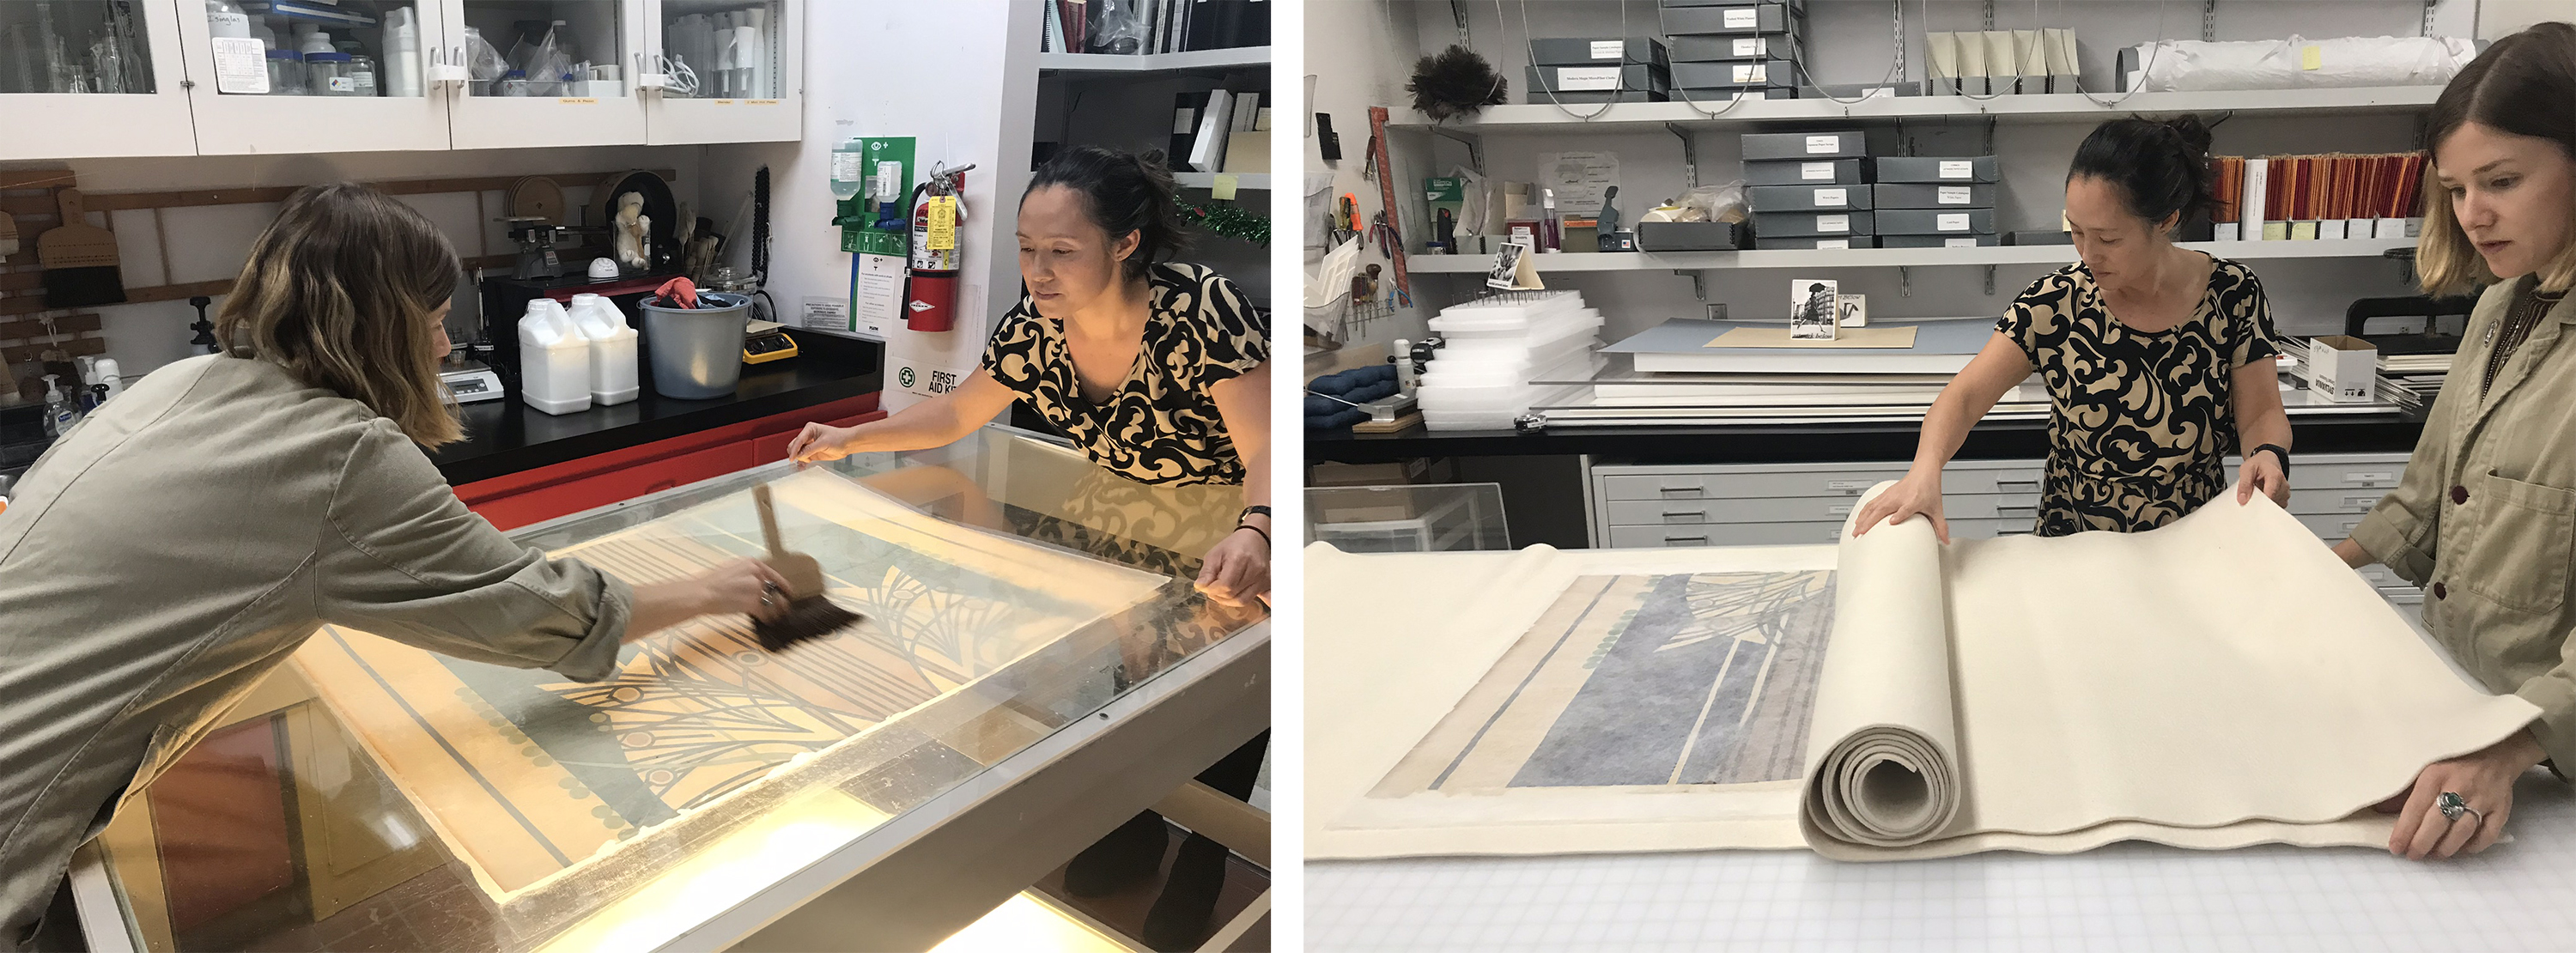 Left: Attaching a paper lining to the back of a poster panel, image courtesy of Janice Schopfer; Right: Drying the lined panel between thick wool sheets, image courtesy of Janice Schopfer